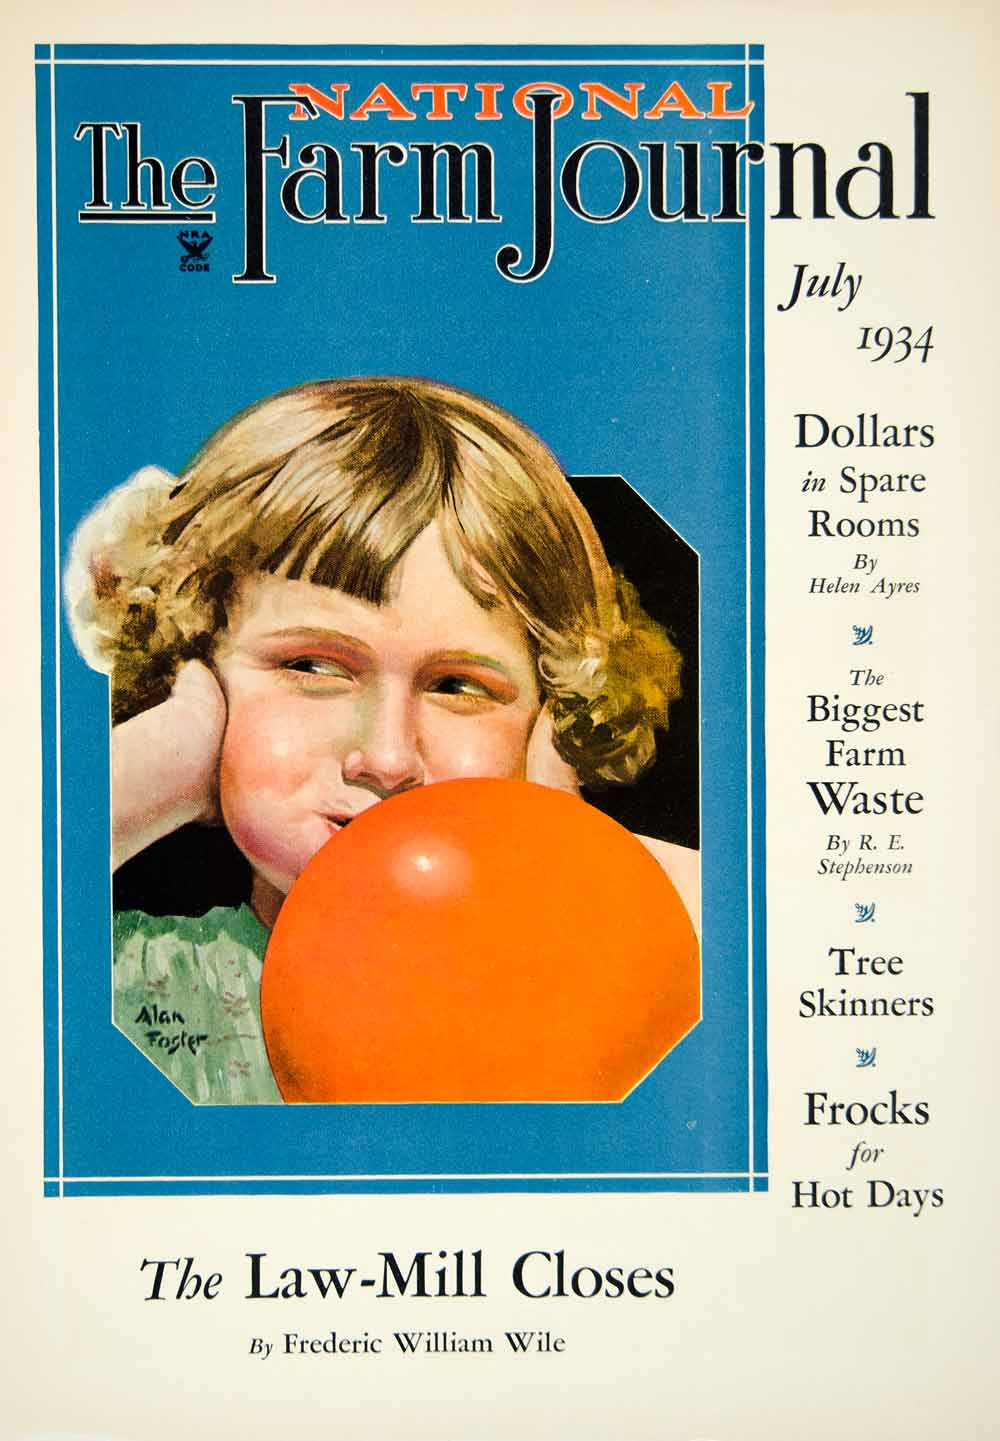 1934 Cover National Farm Journal Art Alan Foster Child Bubble Gum Portrait YFJ1